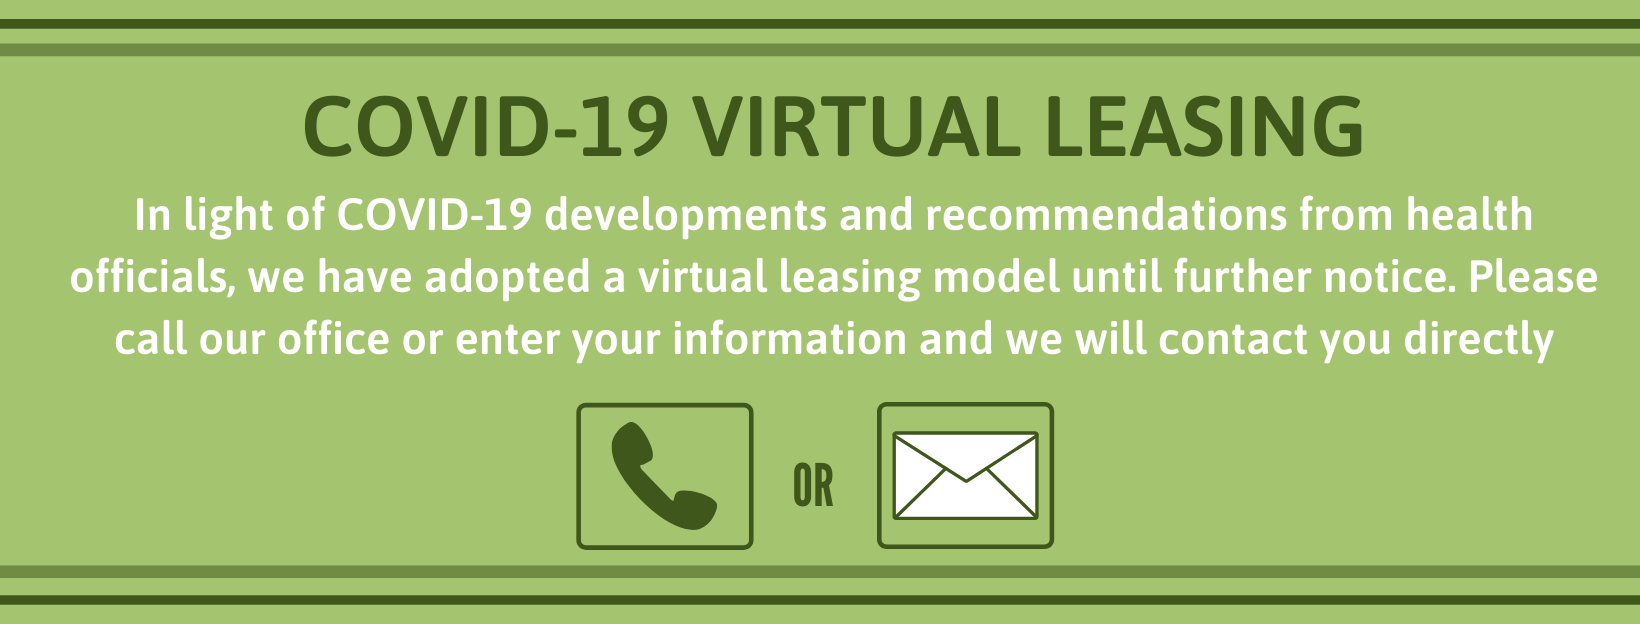 COVID-19 VIRTUAL LEASING In light of COVID-19 developments and recommendations from health officials, we have adopted a virtual leasing model until further notice. Please call our office or enter your information and we will contact you directly.